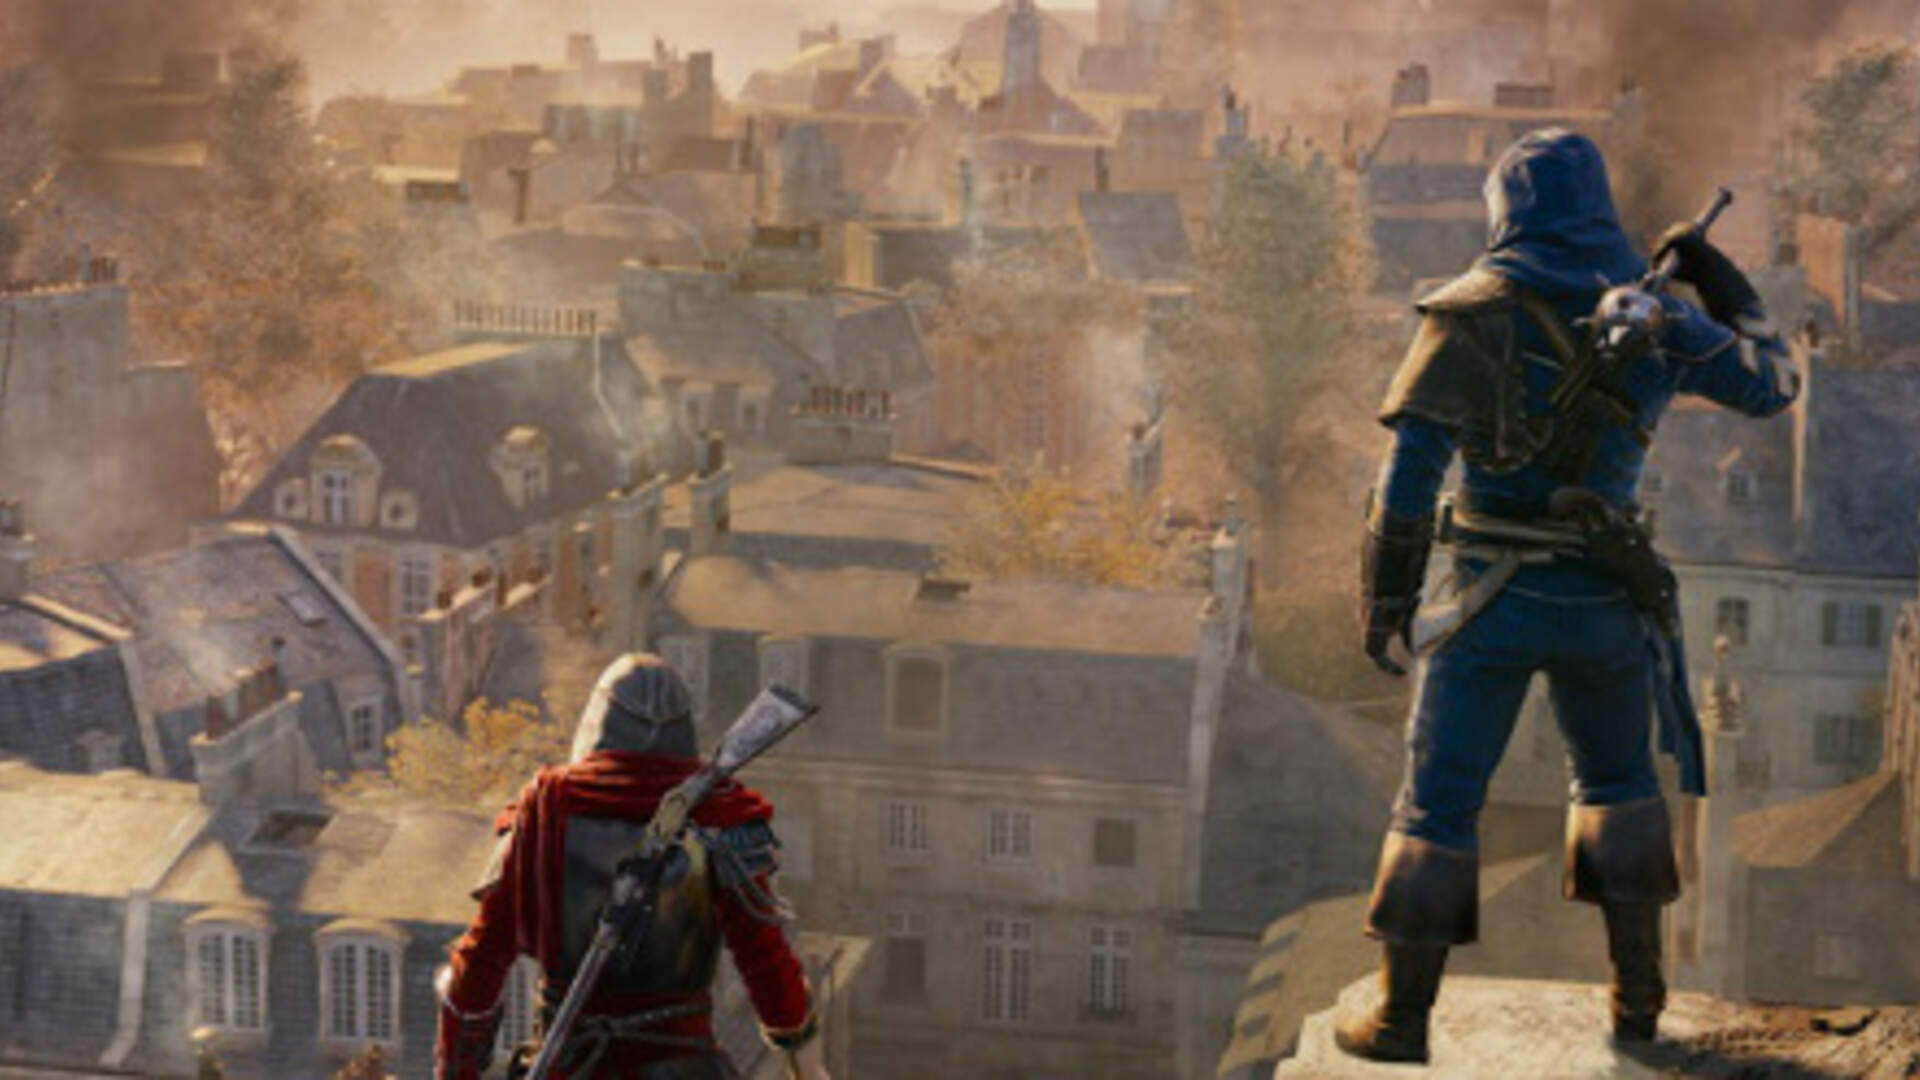 Assassin's Creed Unity - The Video Review